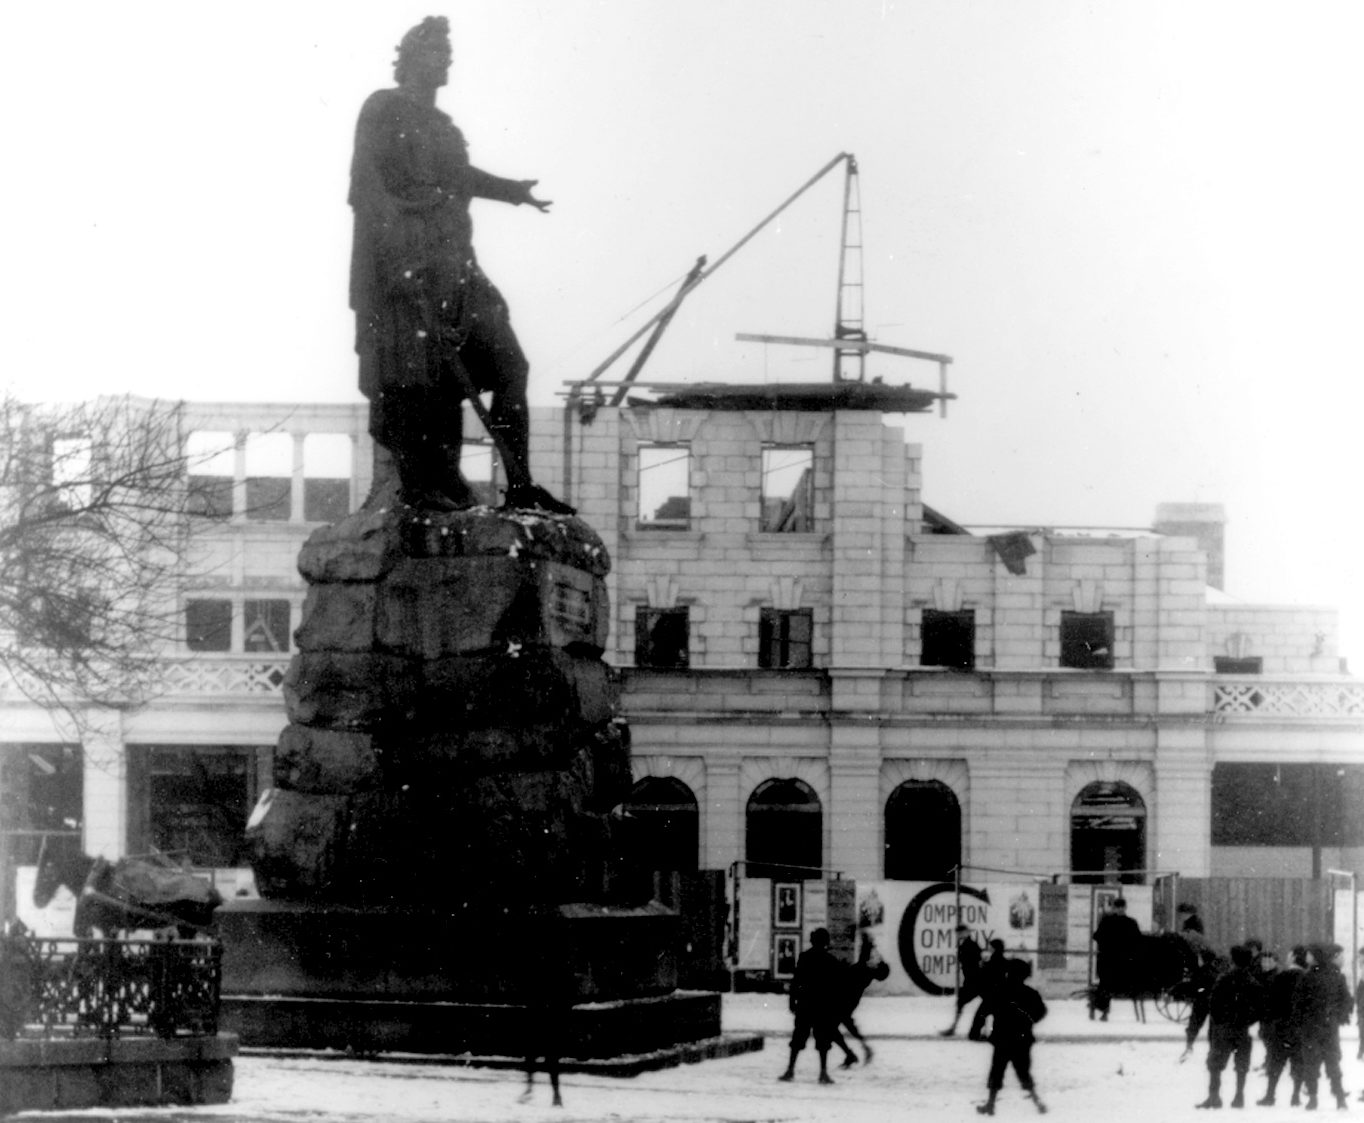 Setting the stage in a photo from the early 1900s as His Majesty's Theatre is being built.